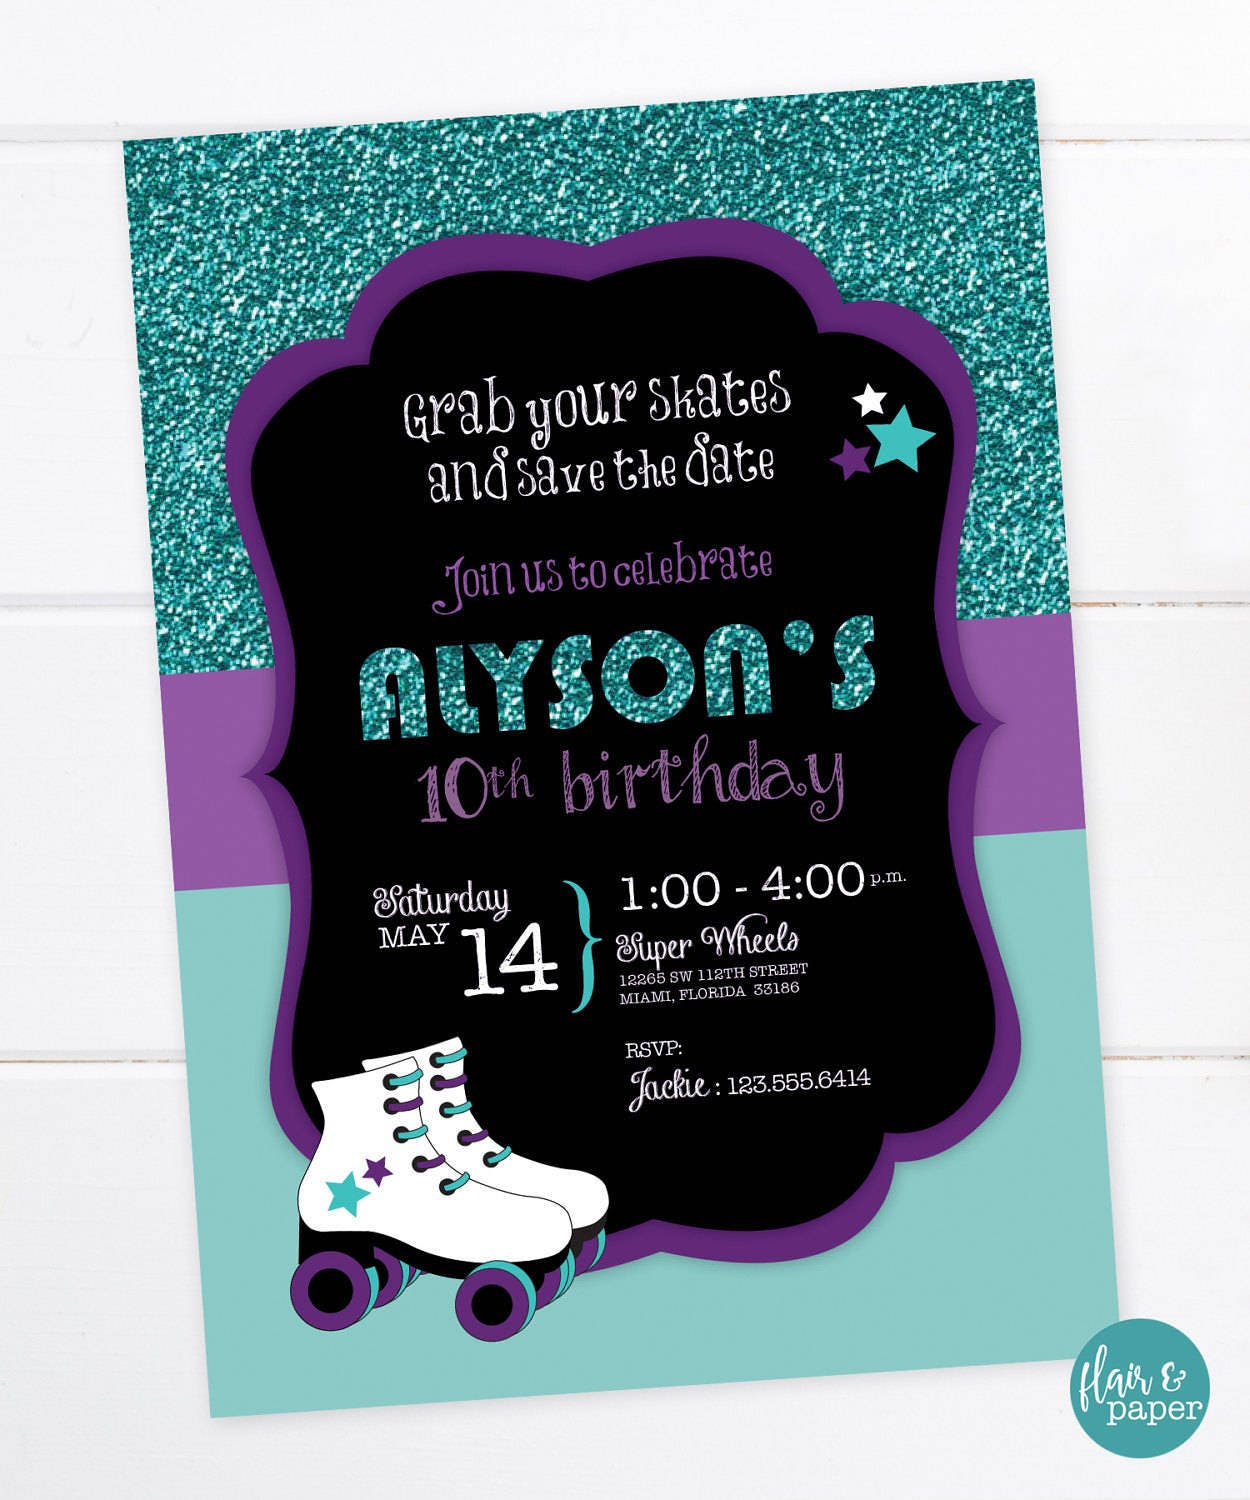 Rollerskate Party Invitation Roller-skate Birthday Roller